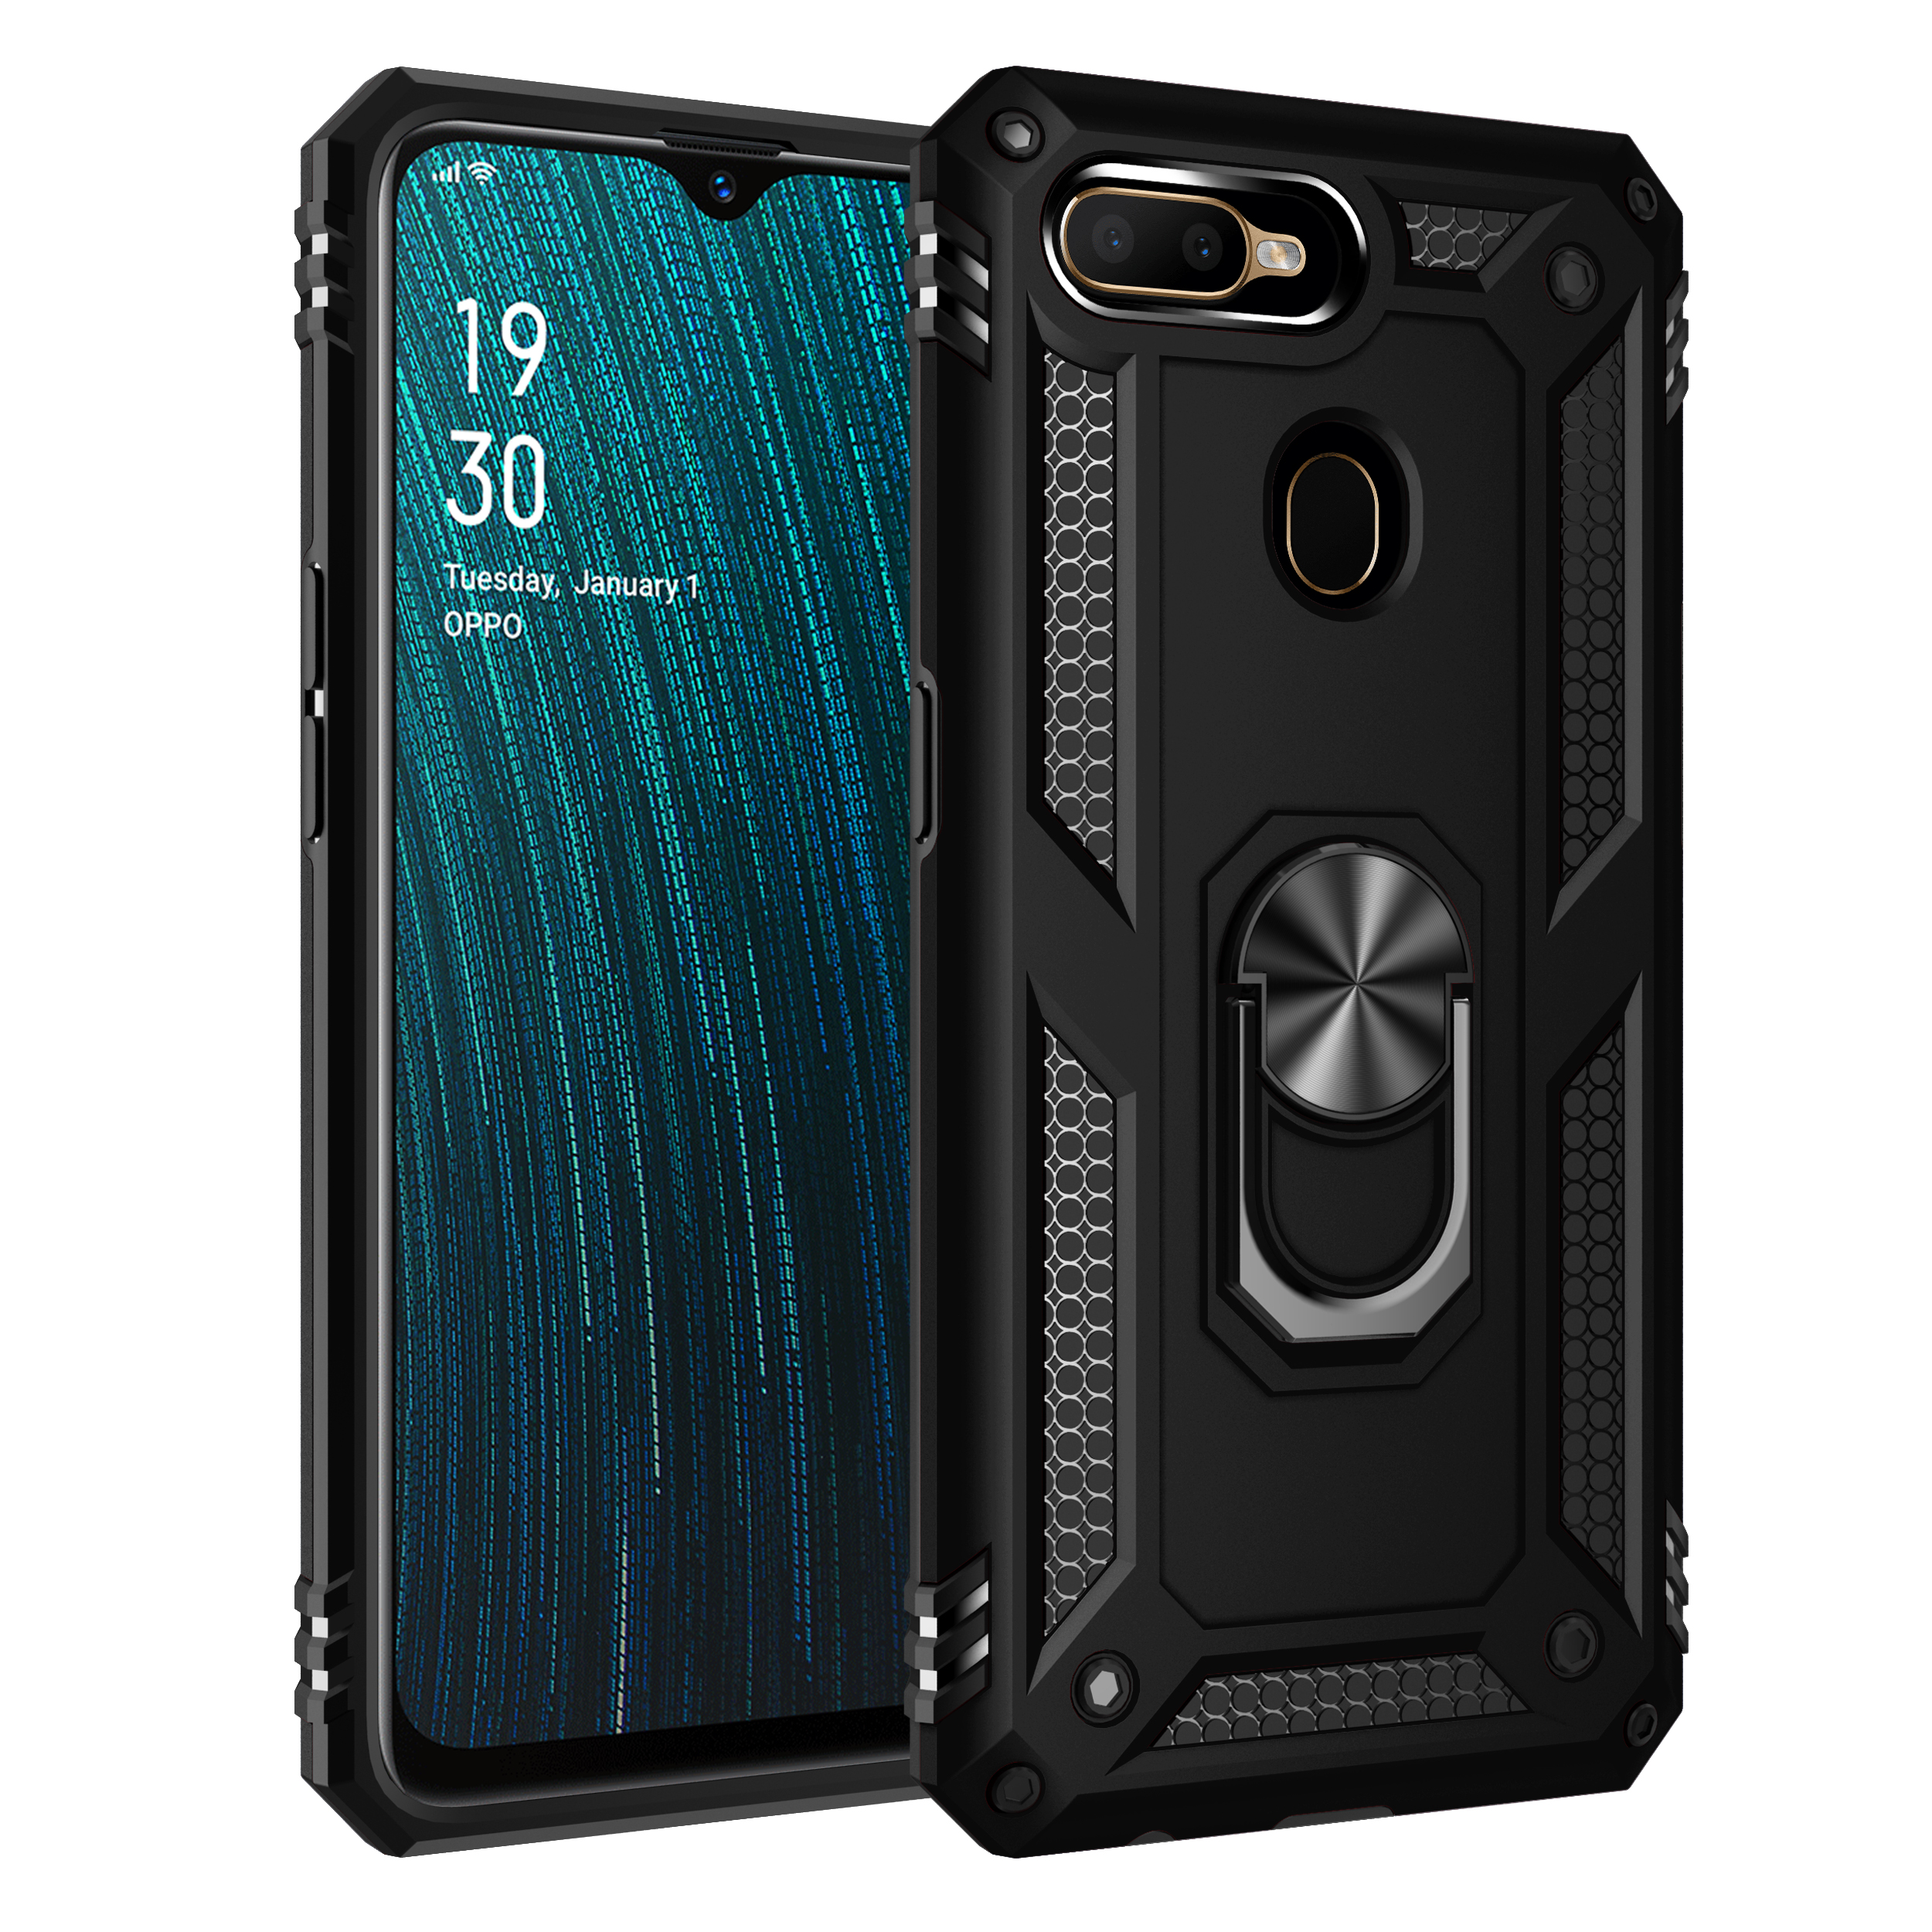 OPPO A5S Case Heavy Duty Tough Rugged Armor Case Kickstand Shockproof Case For OPPO A5S CPH1909 A 5S OPPOA5S OPPO AX5S image